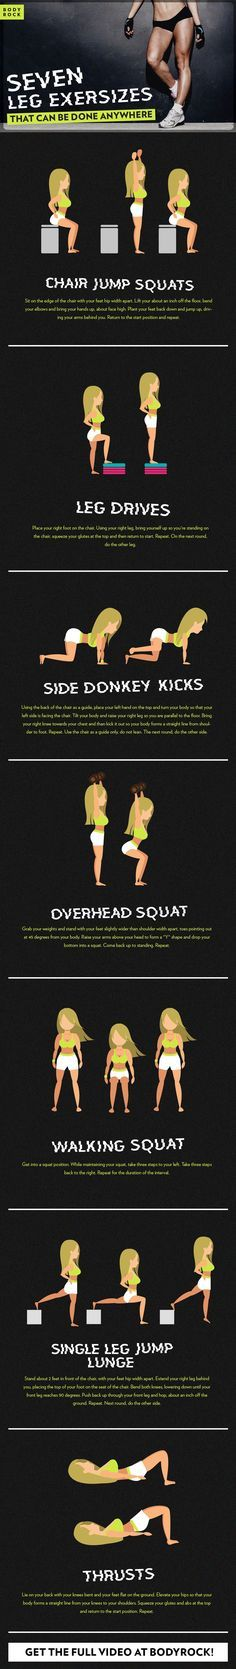 Check out these seve - http://www.beachbodycoach.com/sl47 http://www.beachbodycoach.com/sl47 Free Gym Membership Quotes & Locator 855-402-1258 Check out these seven leg exercises that can be done anywhere! Whether it's a… BodyRock Fitness http://47fitne